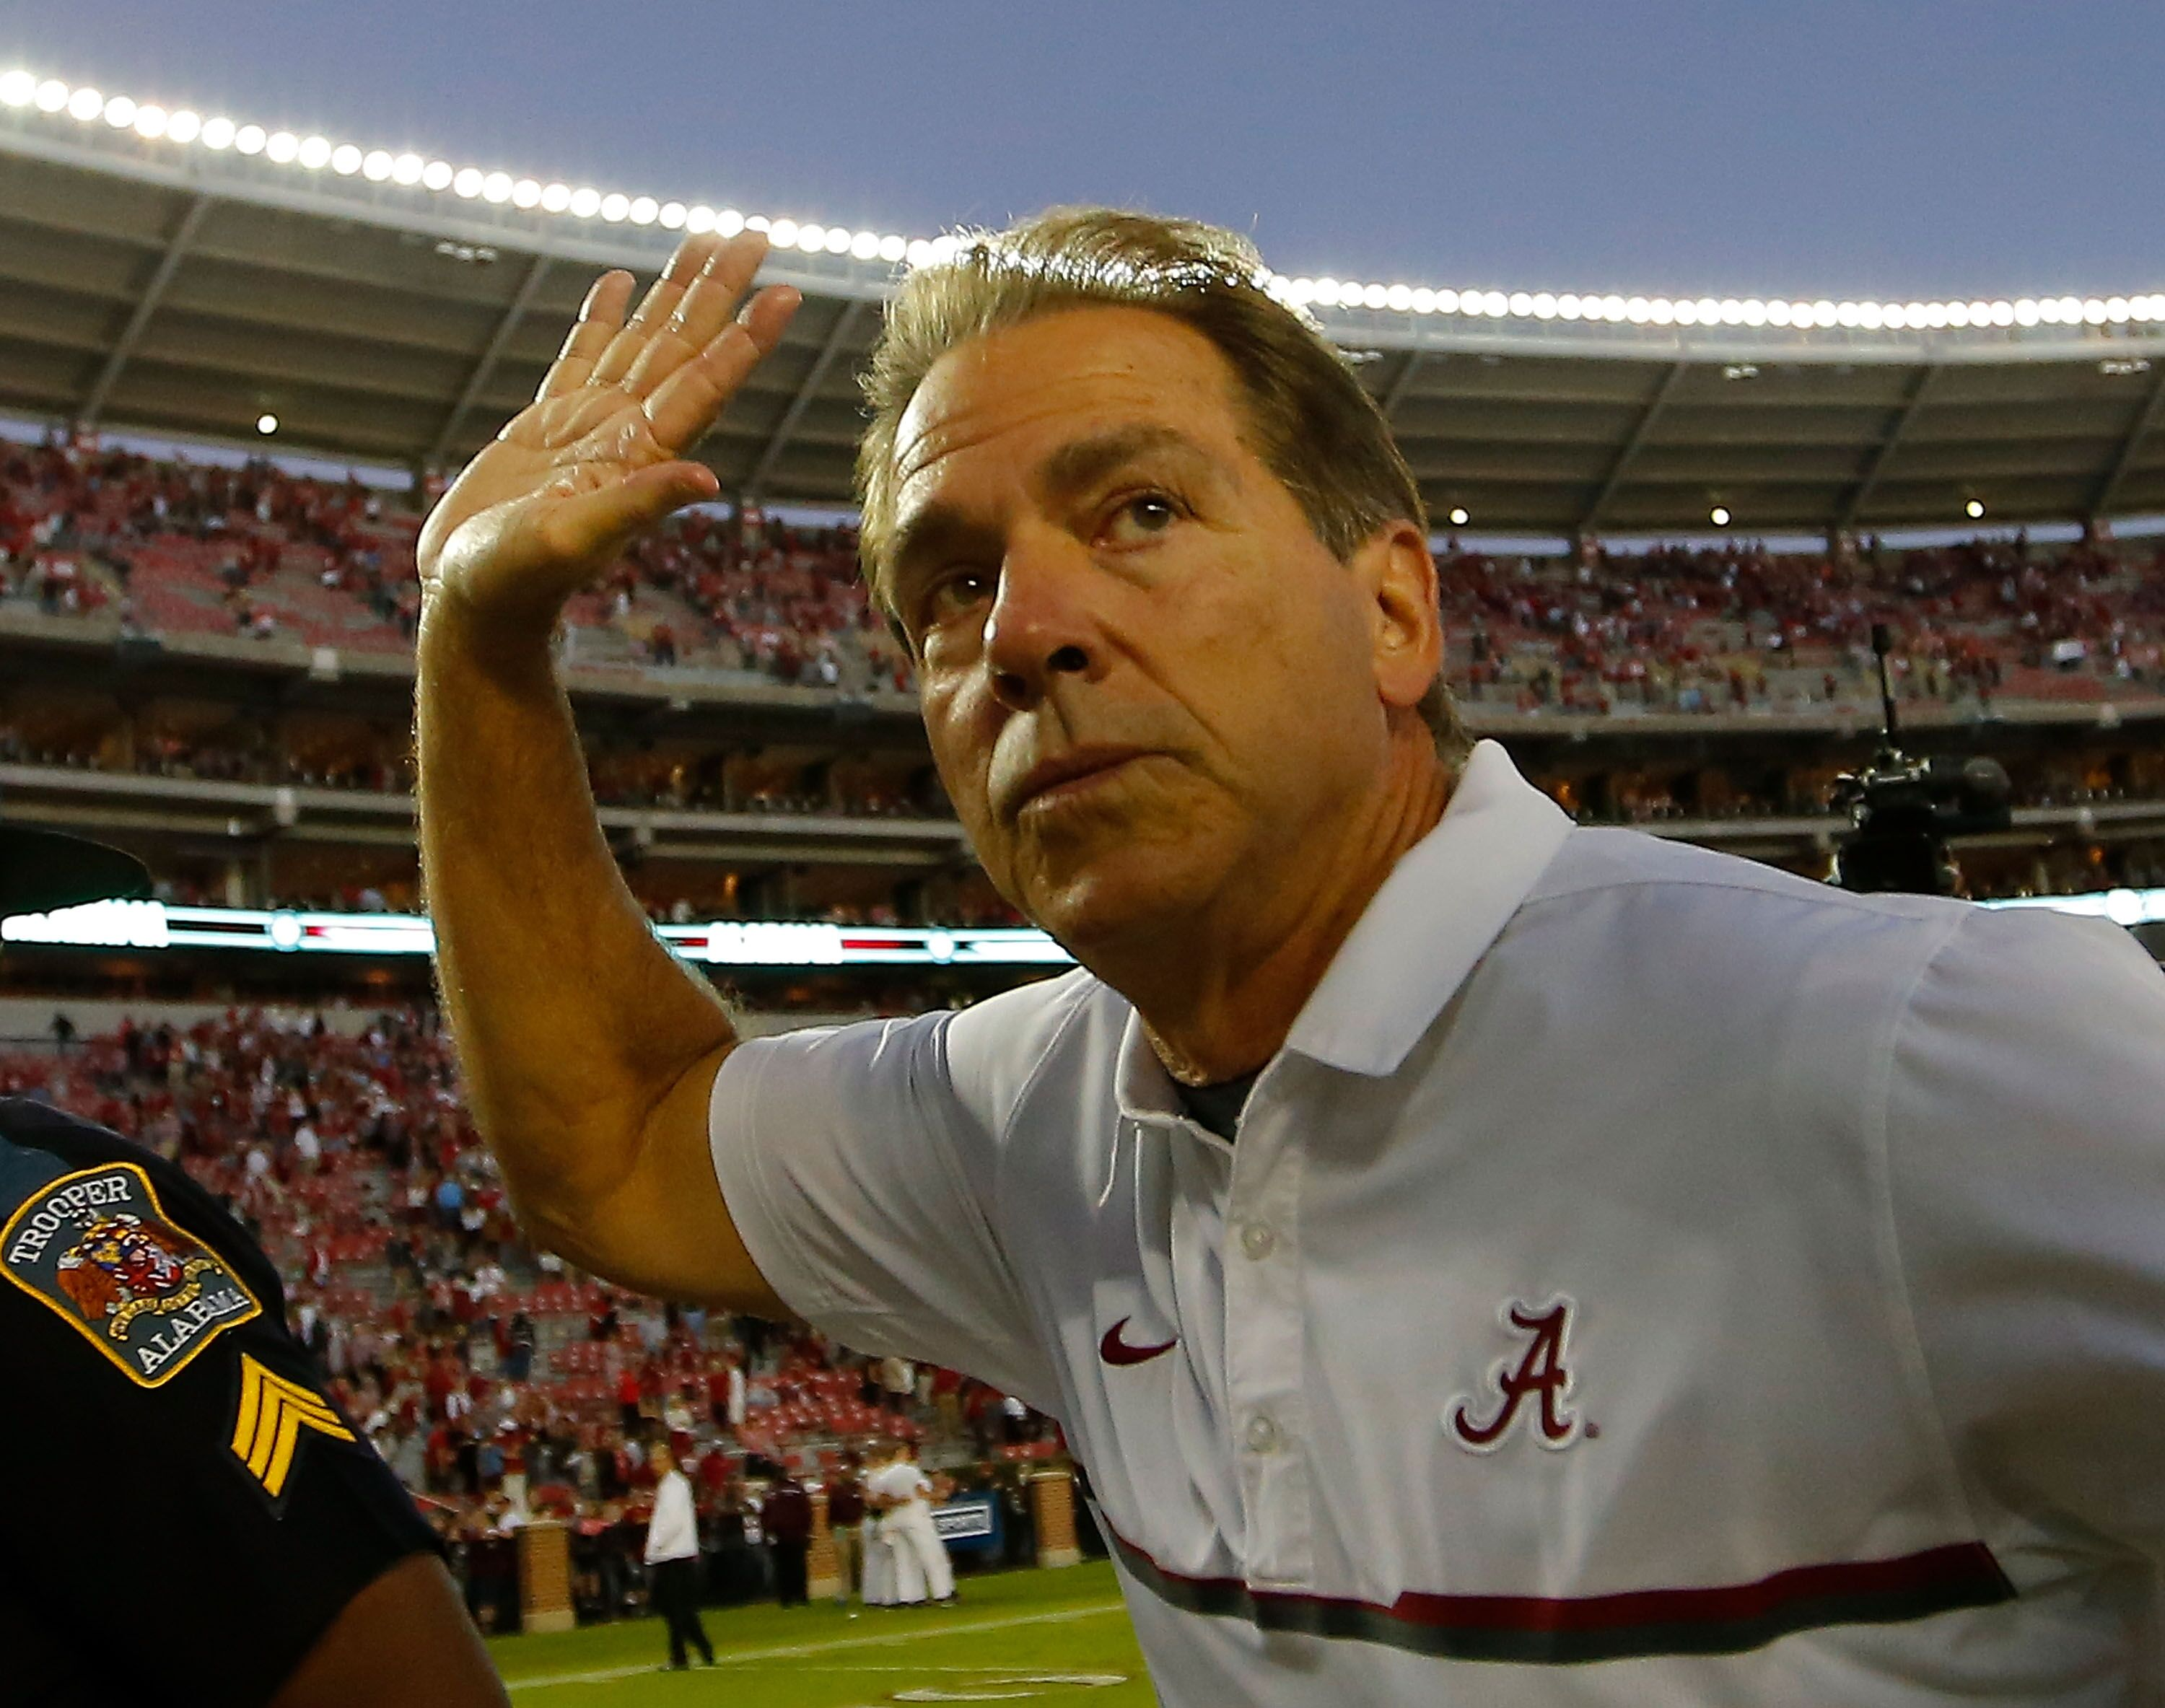 Alabama Football Recruiting: Tide commits rise as tight numbers get tighter